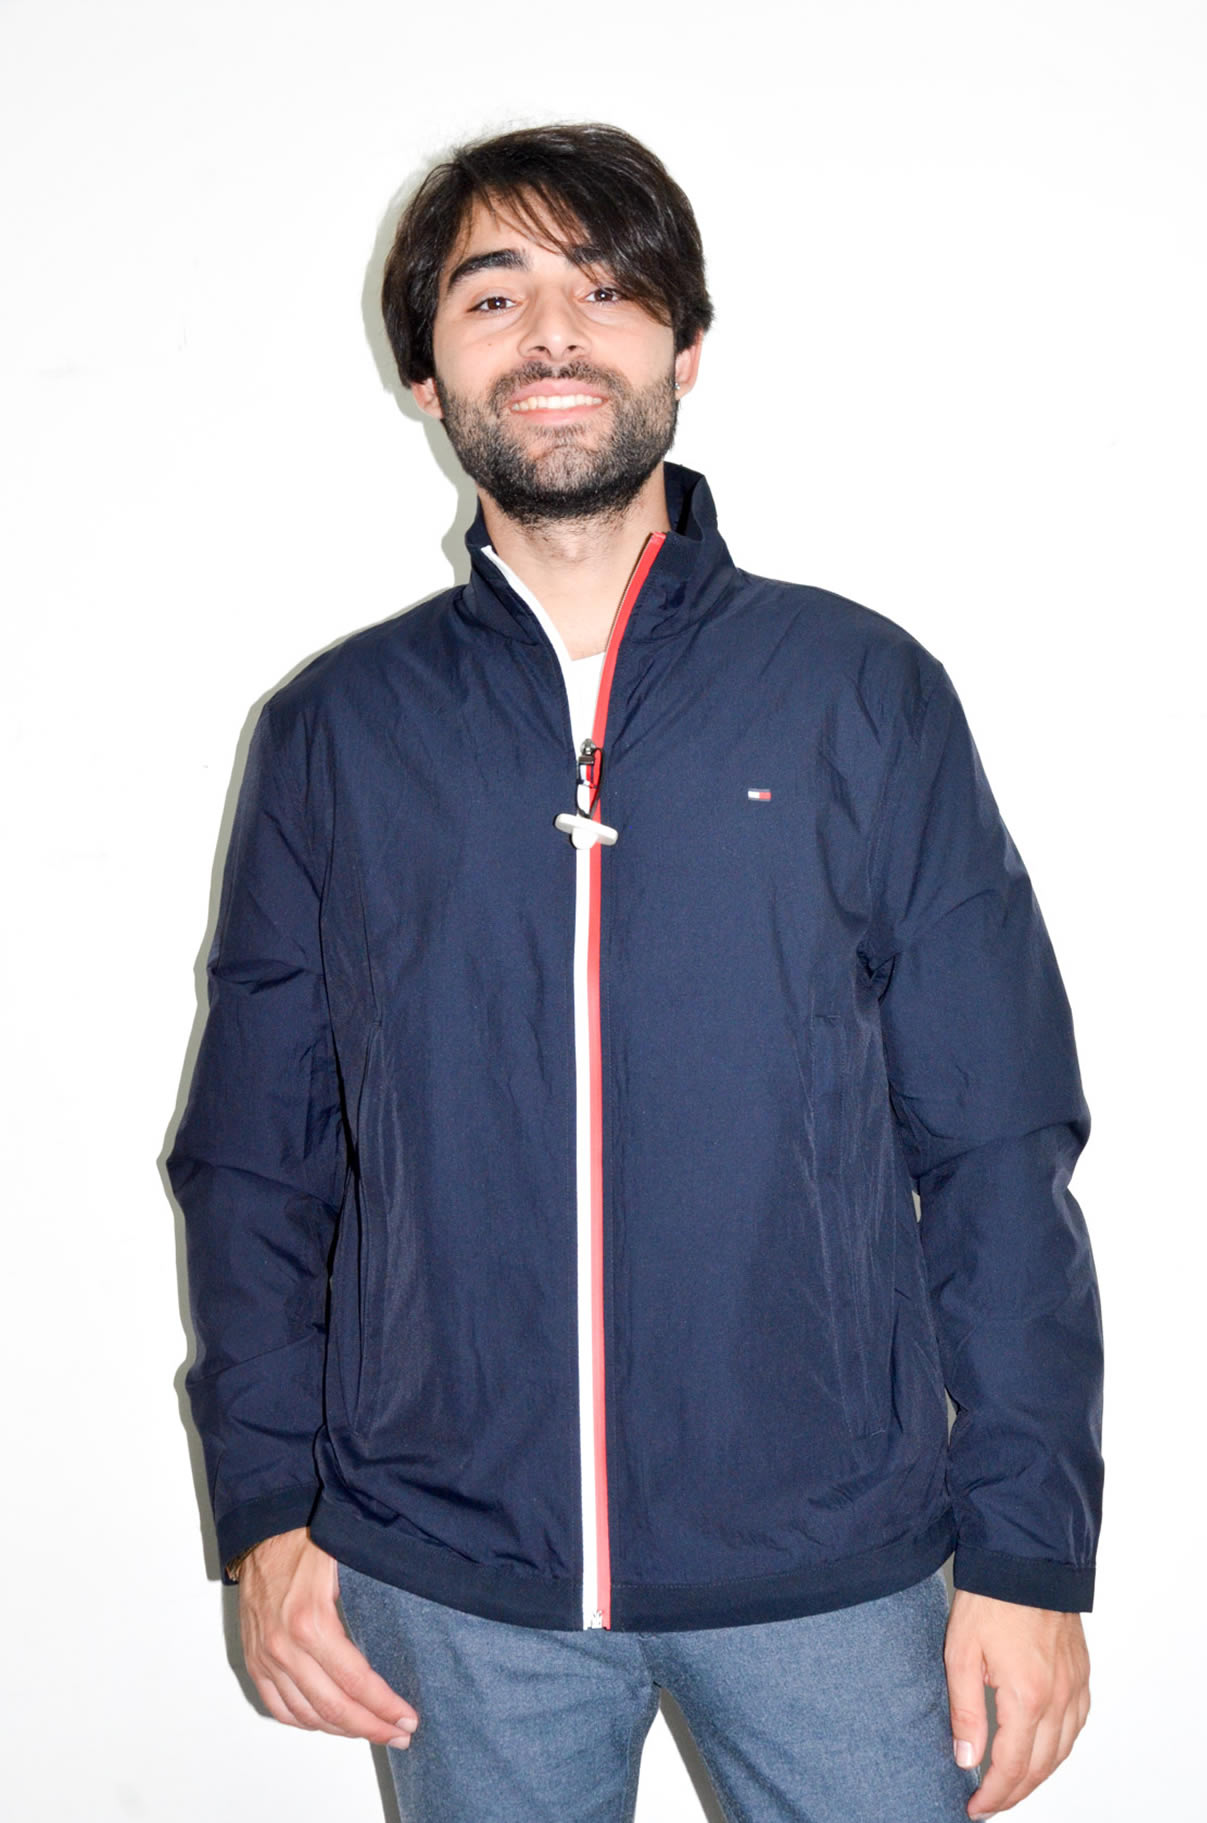 finest selection 07bb1 46be5 Tommy Hilfiger - Giubbino